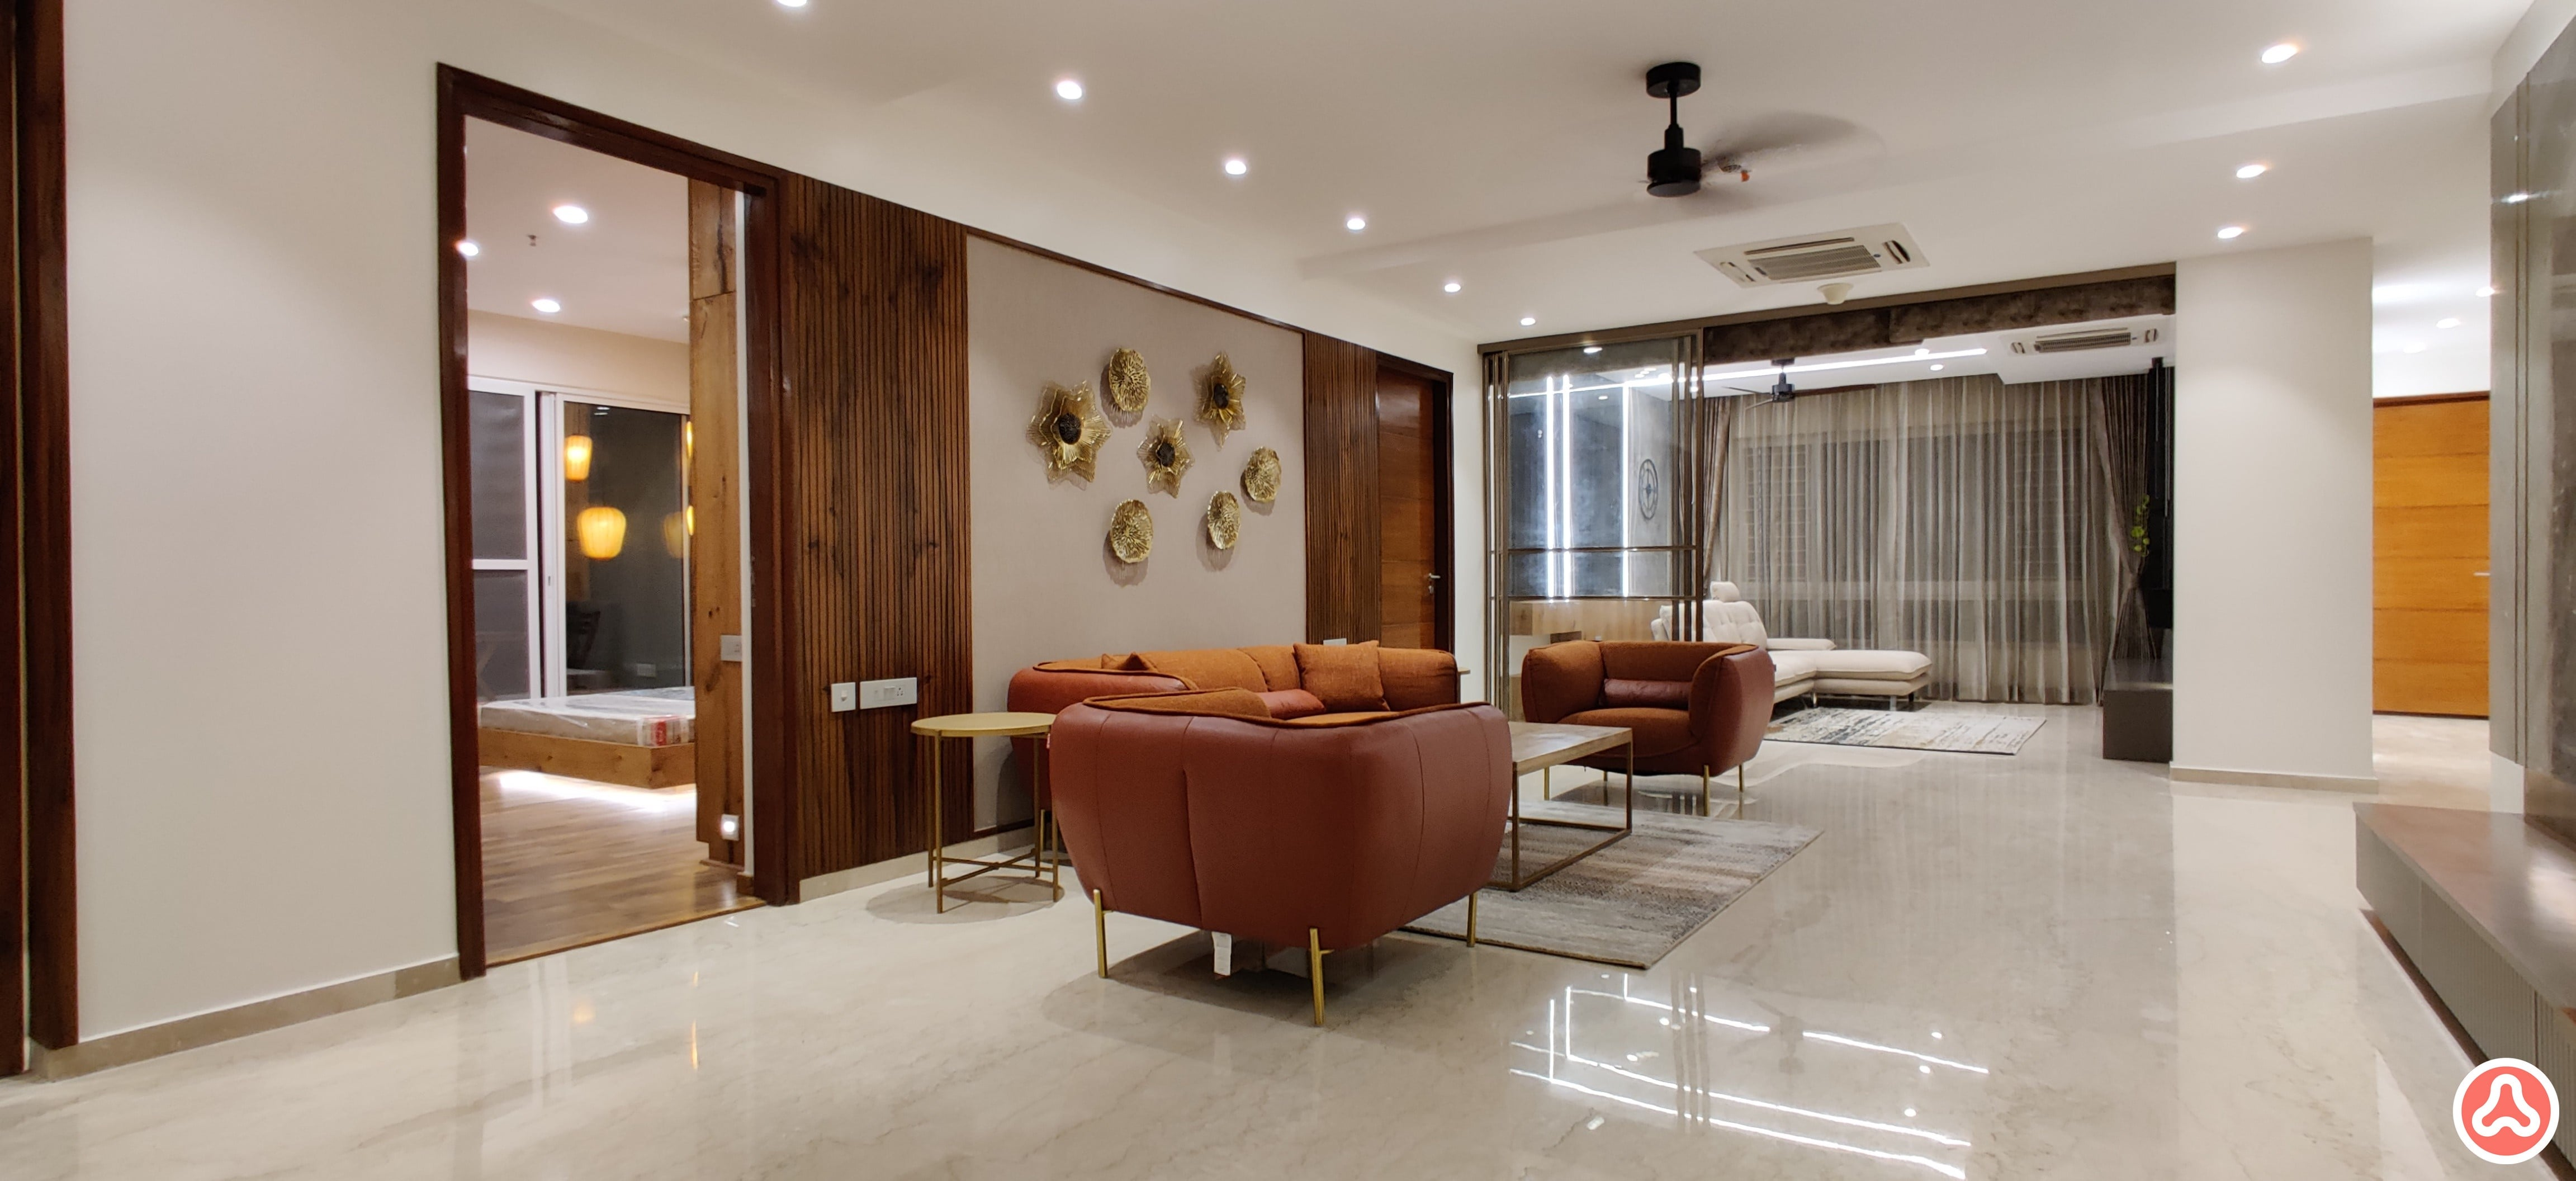 Premium living room with wall paper and leather sofa for a 4 bhk apartment in hydrabad